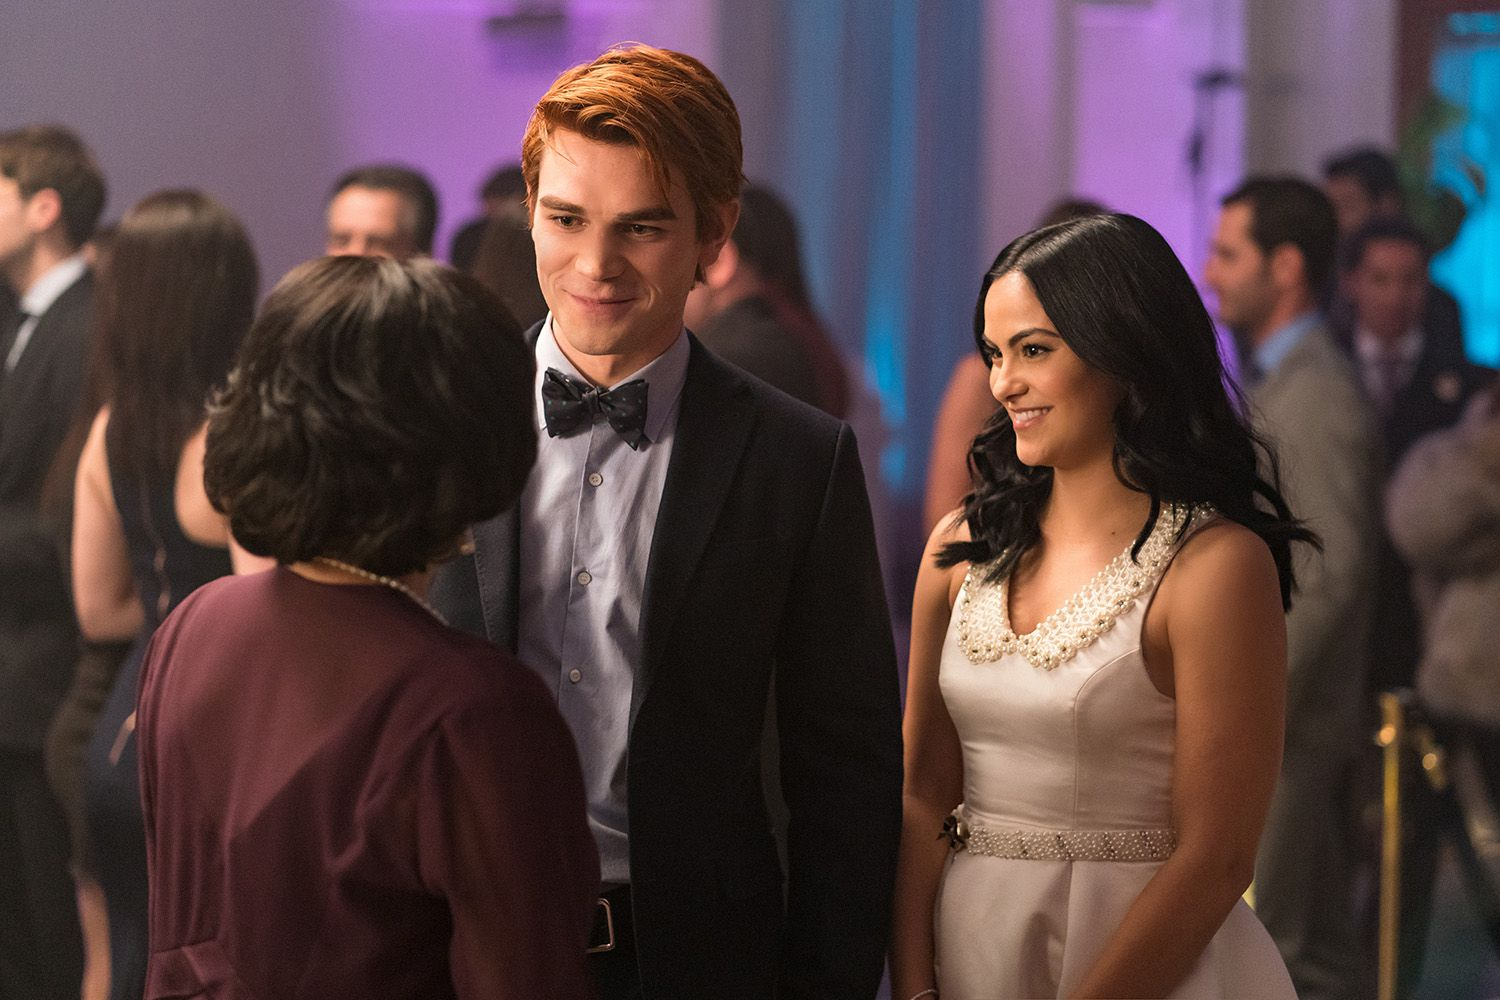 Camila Mendes and K.J. Apa in Riverdale (2016)